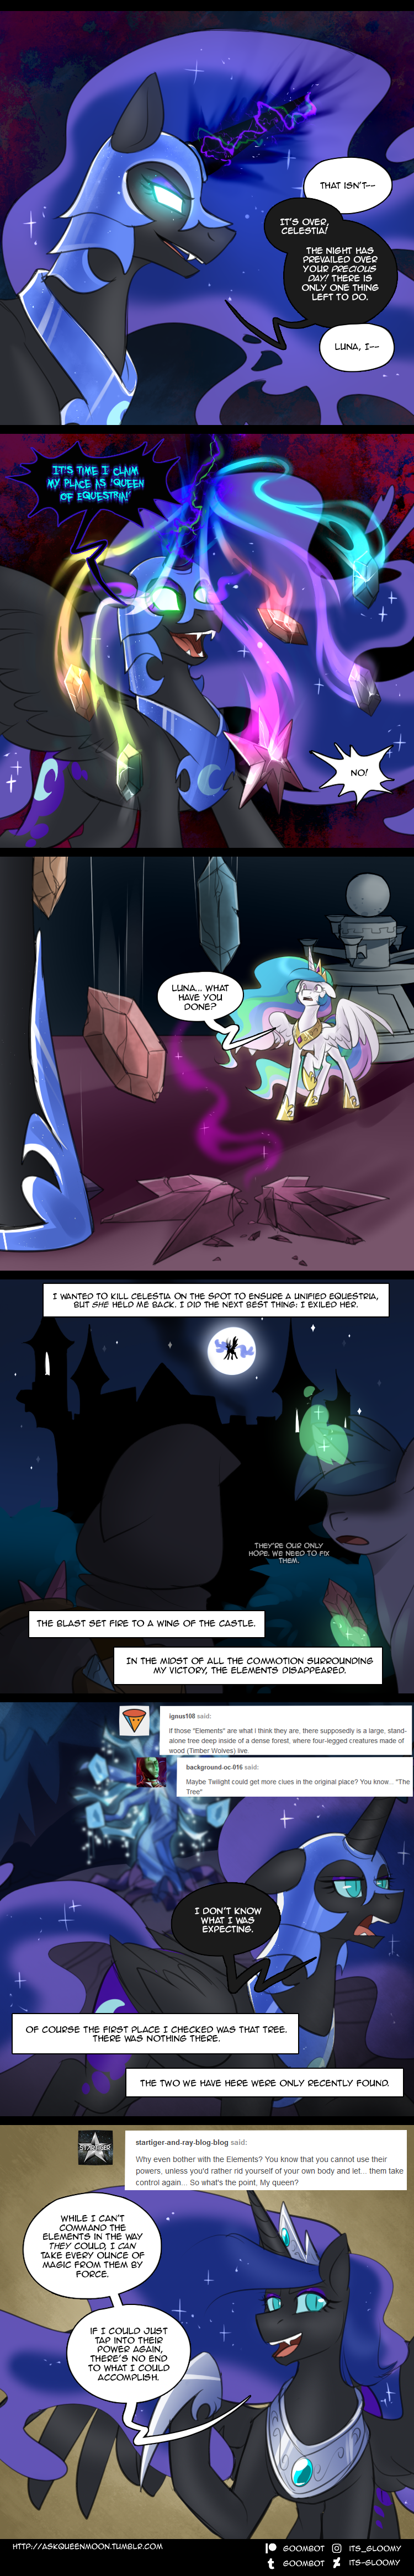 Page 6 - Part 4